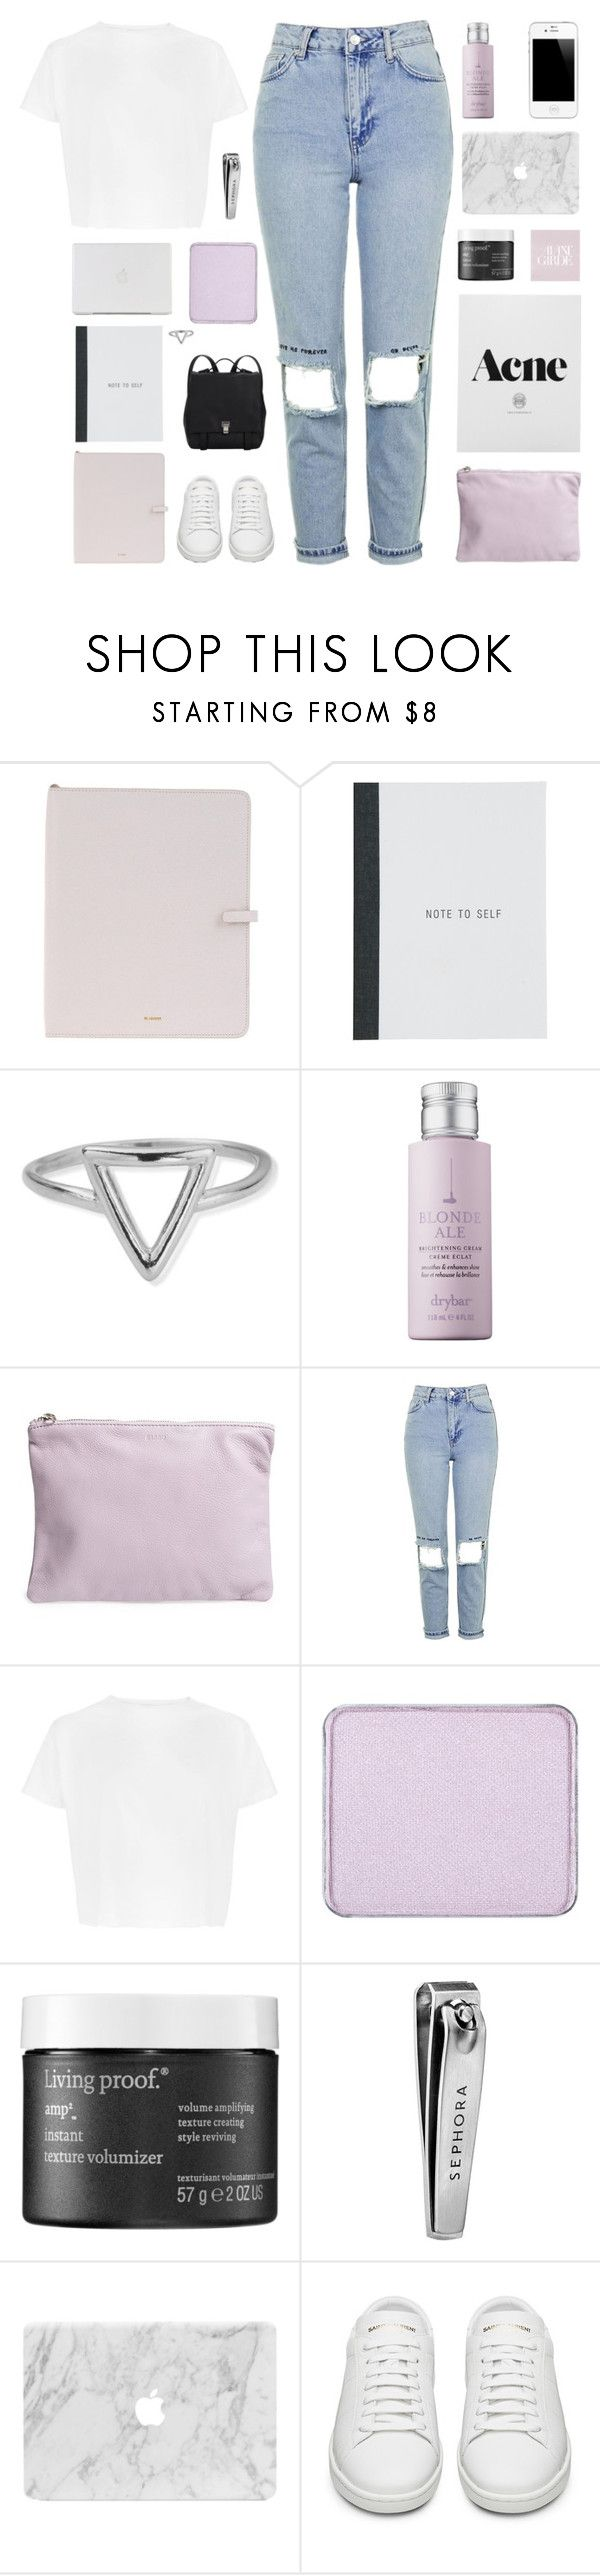 """""""LIKE TO JOIN OUR TAGLIST"""" by naturitve ❤ liked on Polyvore featuring Jil Sander, ChloBo, Drybar, BAGGU, Topshop, shu uemura, Living Proof, Sephora Collection, Yves Saint Laurent and Proenza Schouler"""